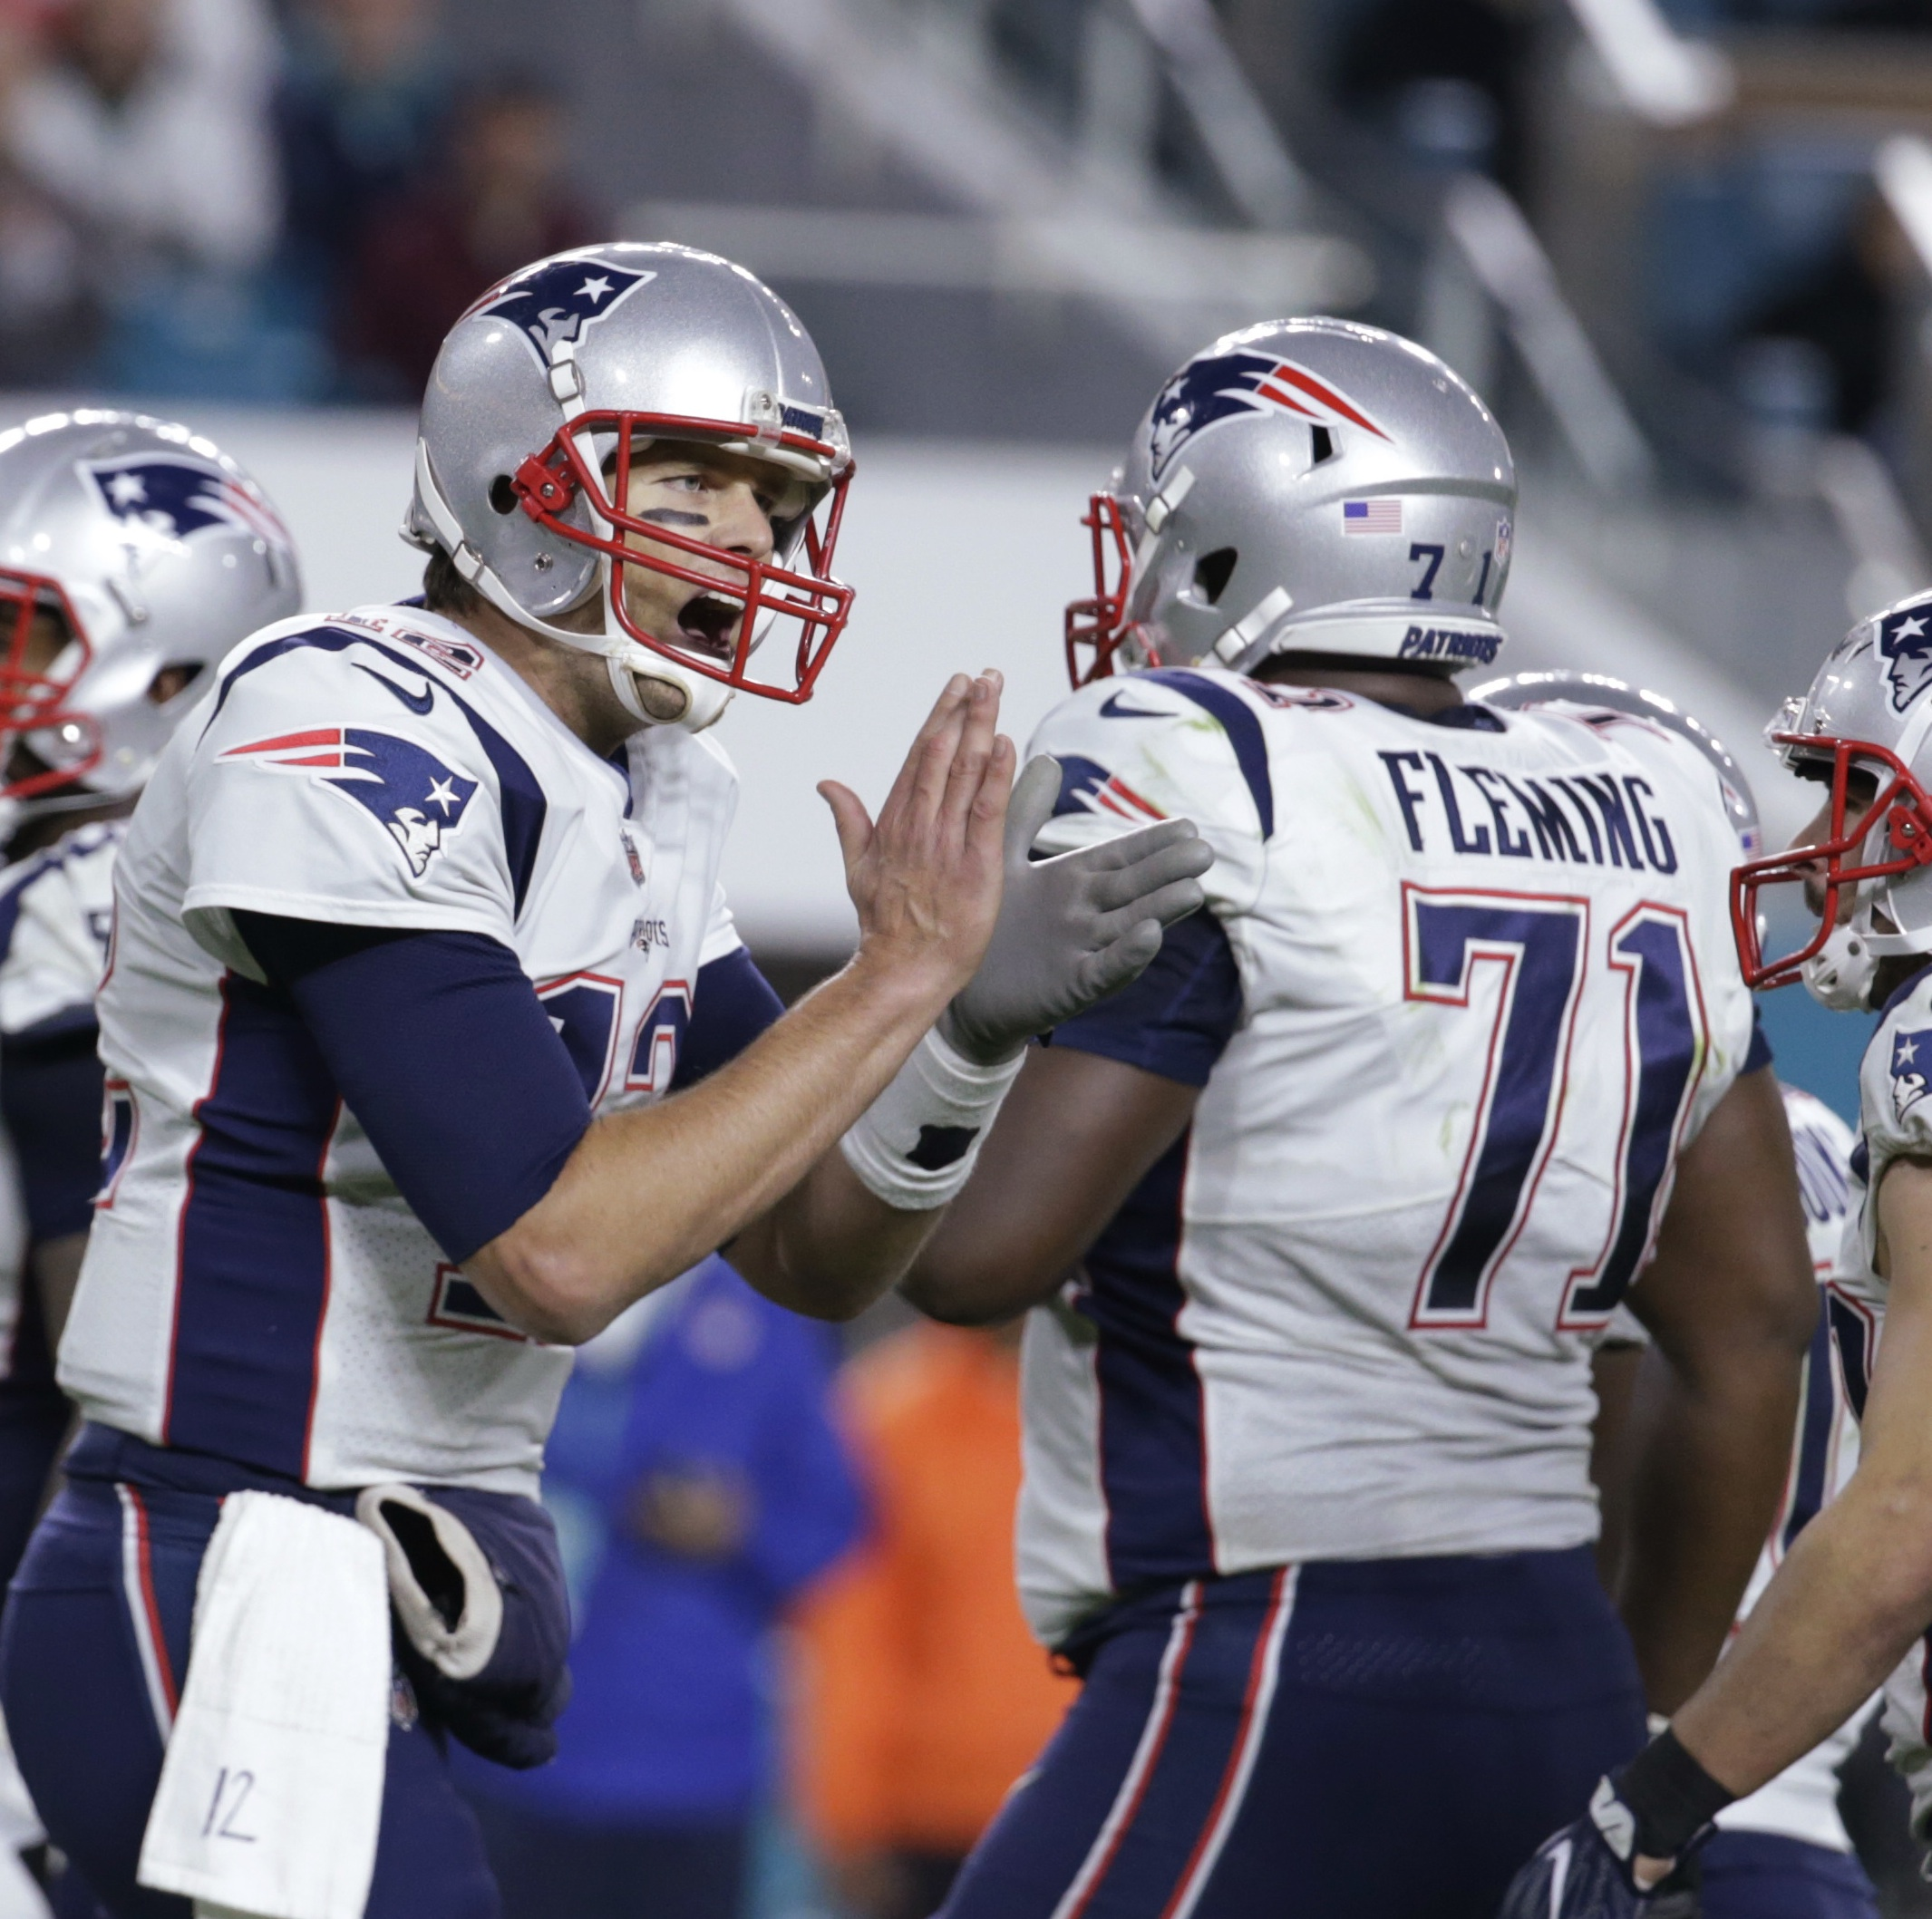 ad9db4dca Steelers well aware of best way to defend Pats  passing